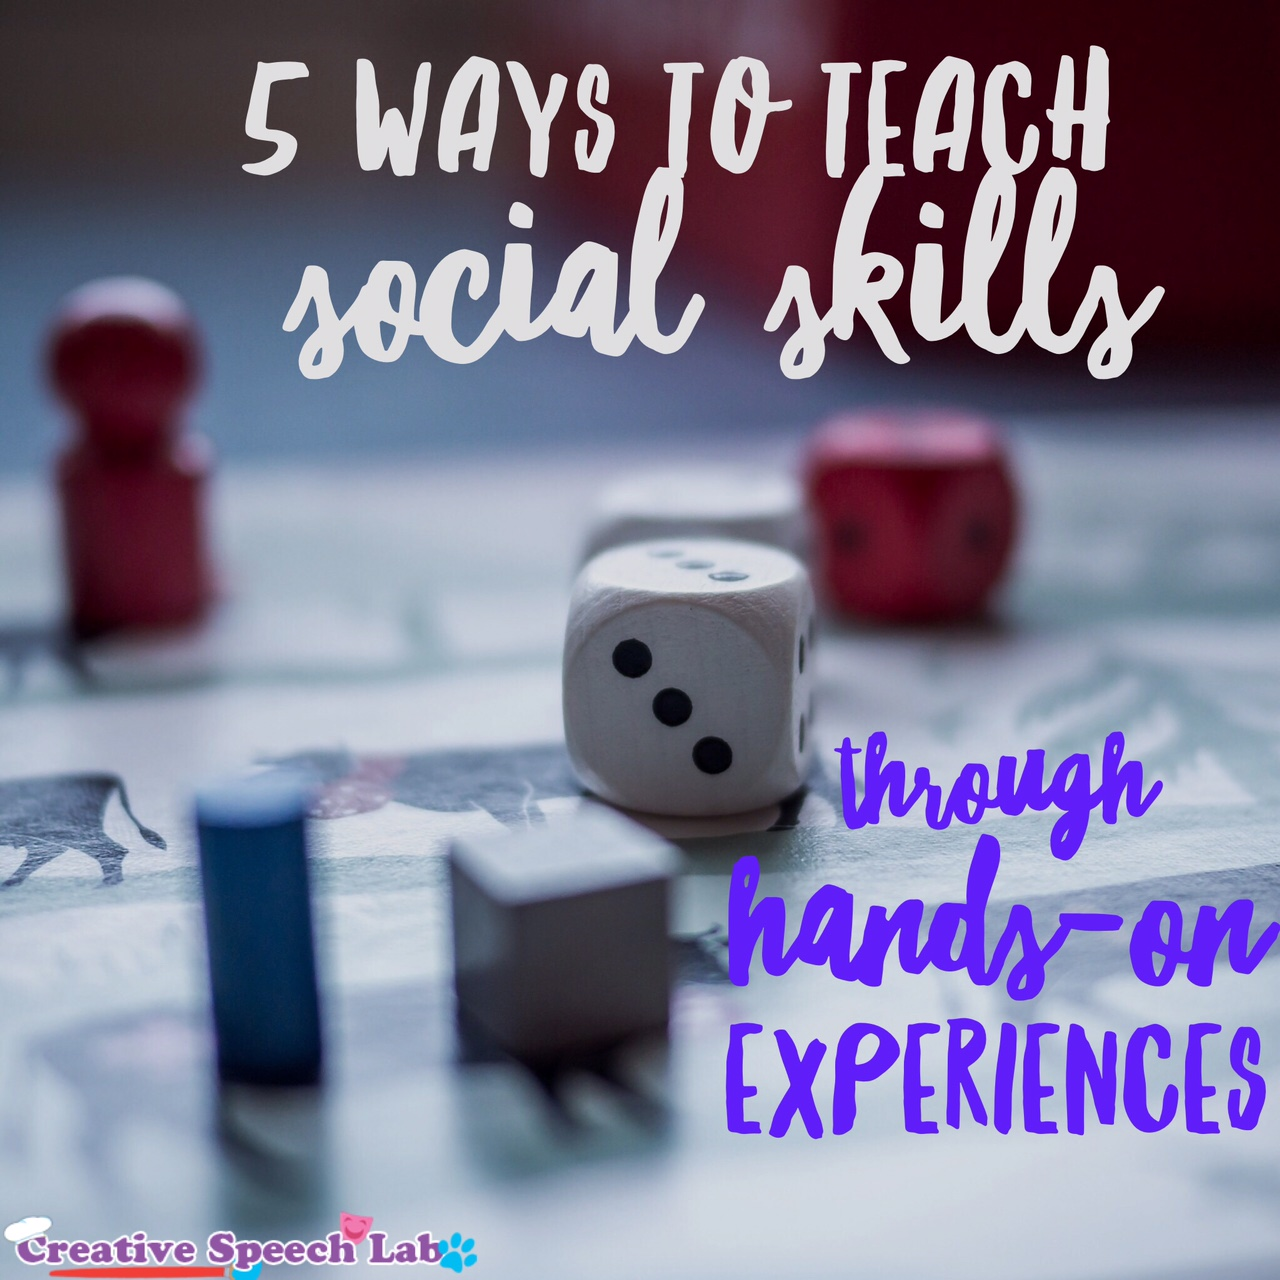 5 Ways to Teach Social Skills Through Hands-On Experiences Guest Post by Creative Speech Lab